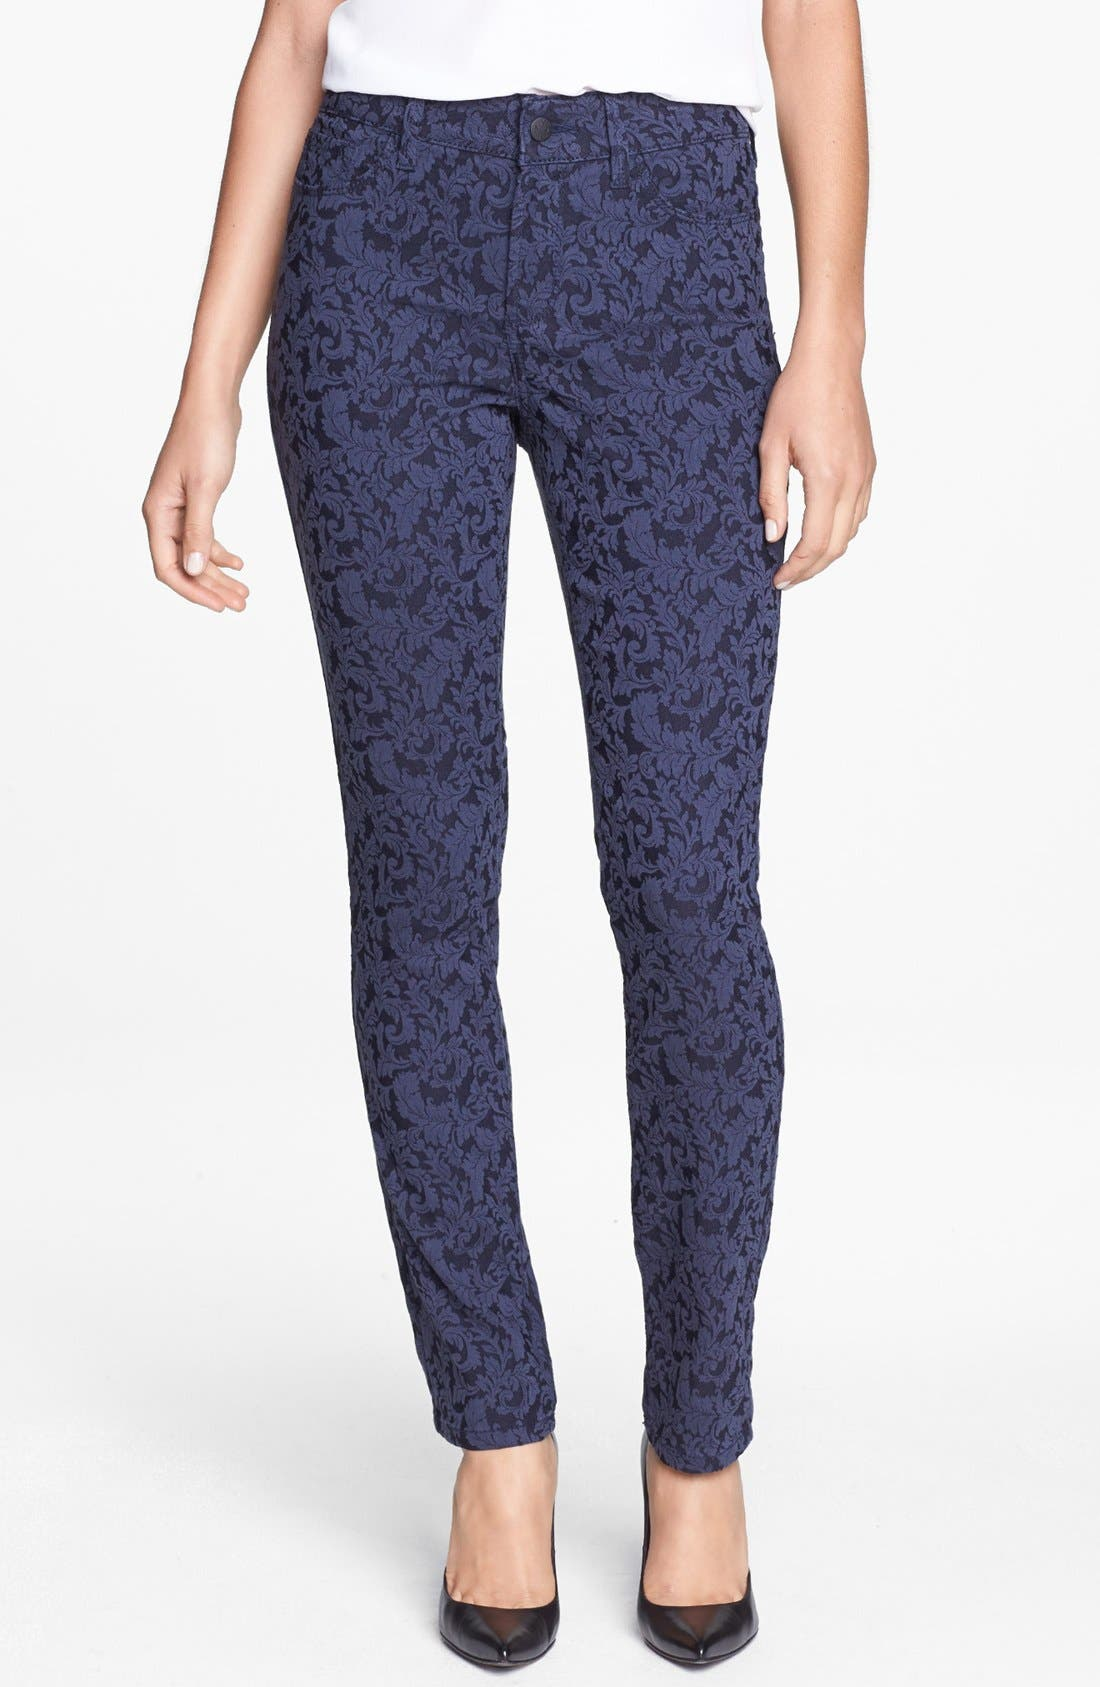 Alternate Image 1 Selected - NYDJ 'Jade' Patterned Stretch Skinny Jeans (Navy Jacquard)